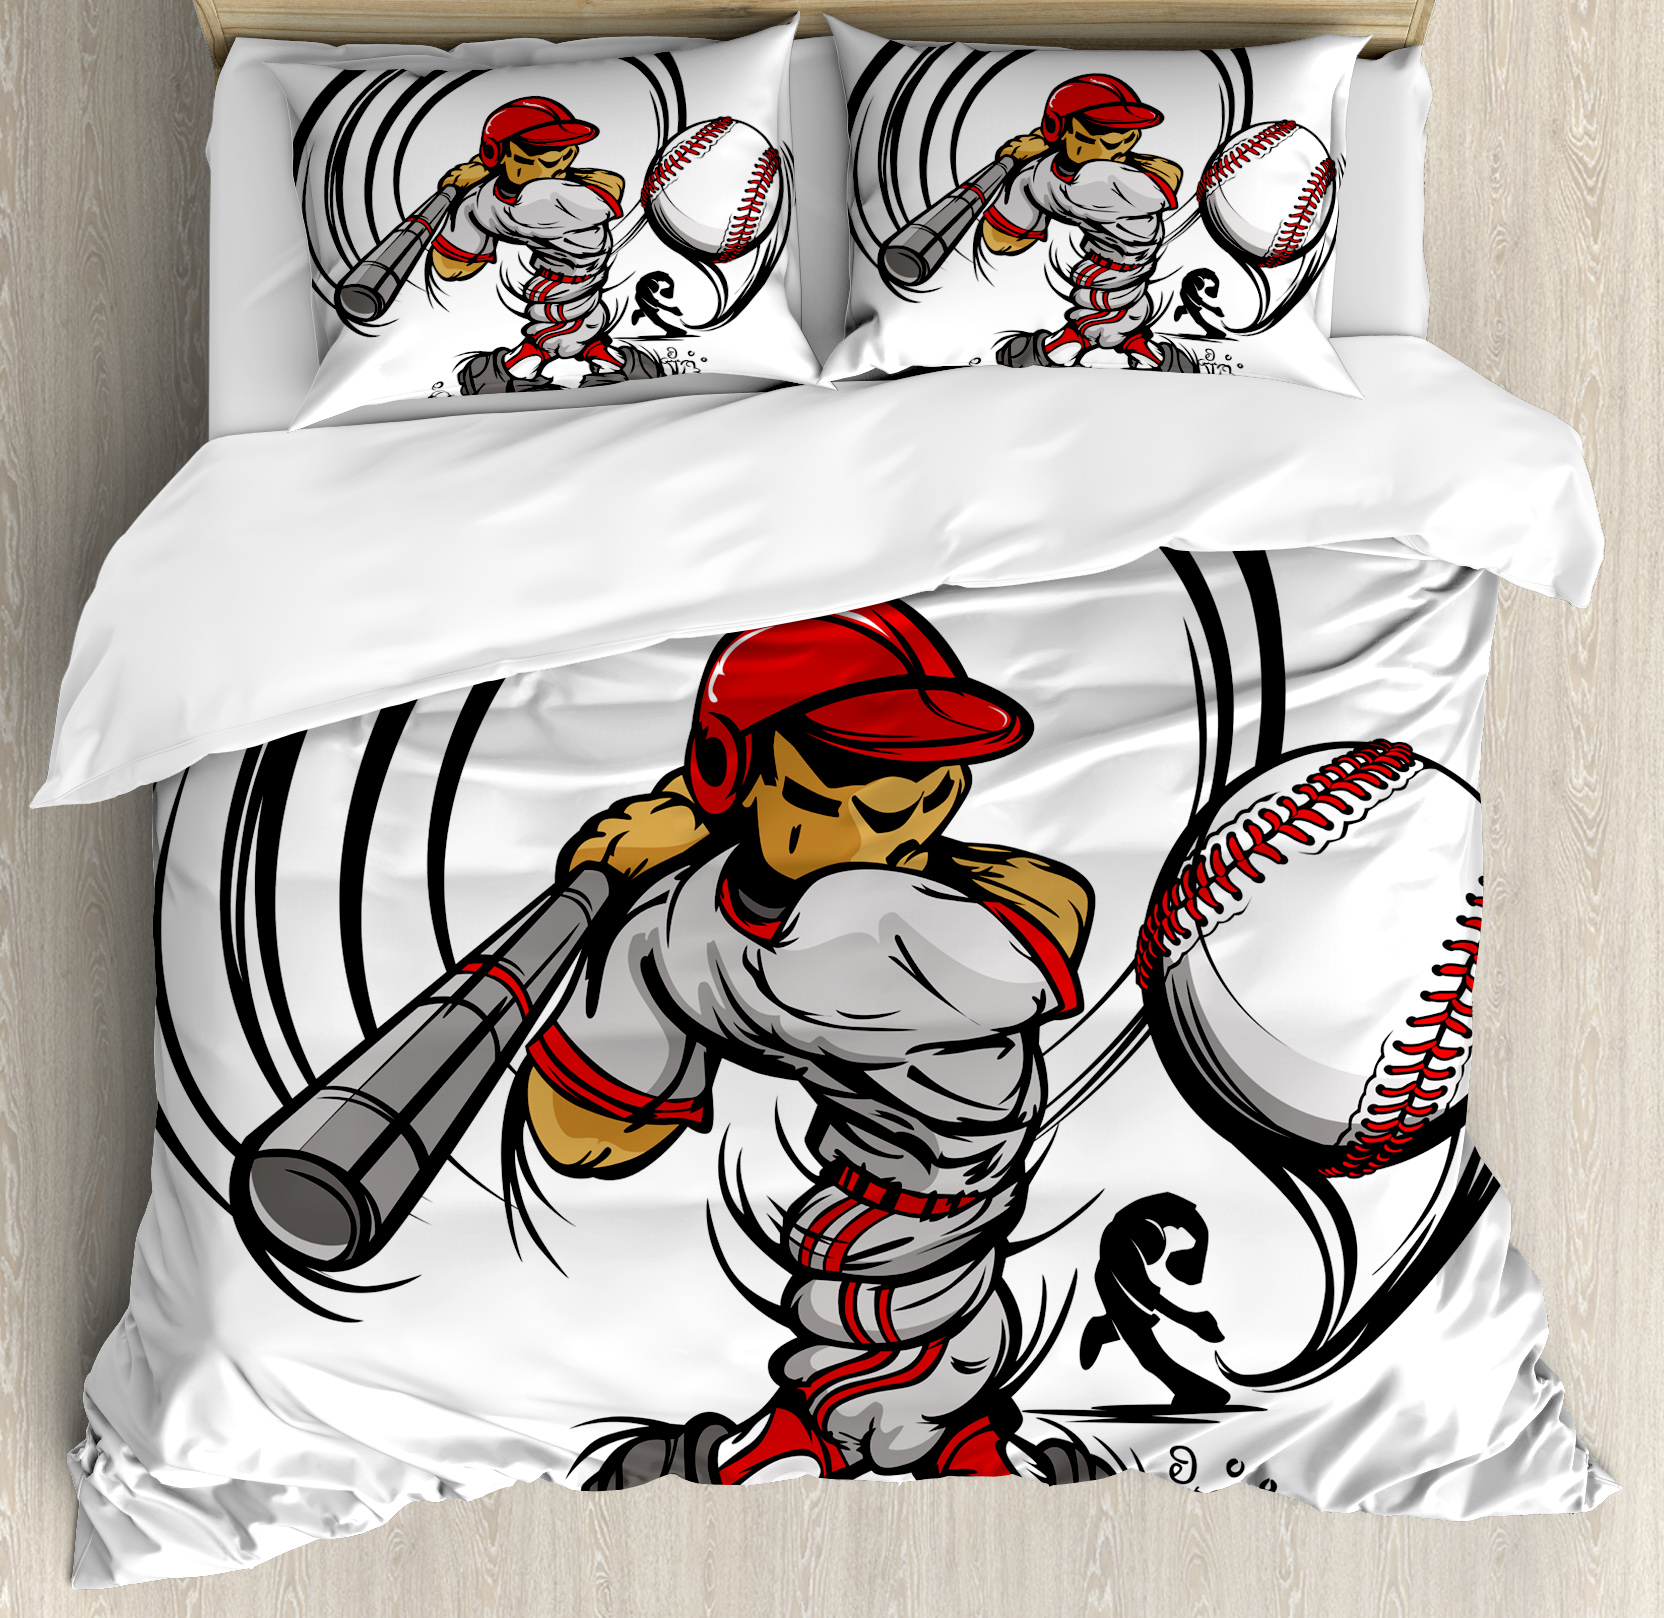 Teen Room Decor Queen Size Duvet Cover Set, Baseball Cartoon Player Hitting the Ball Boys Kids Caricature Print, Decorative 3 Piece Bedding Set with 2 Pillow Shams, Grey Red White, by Ambesonne